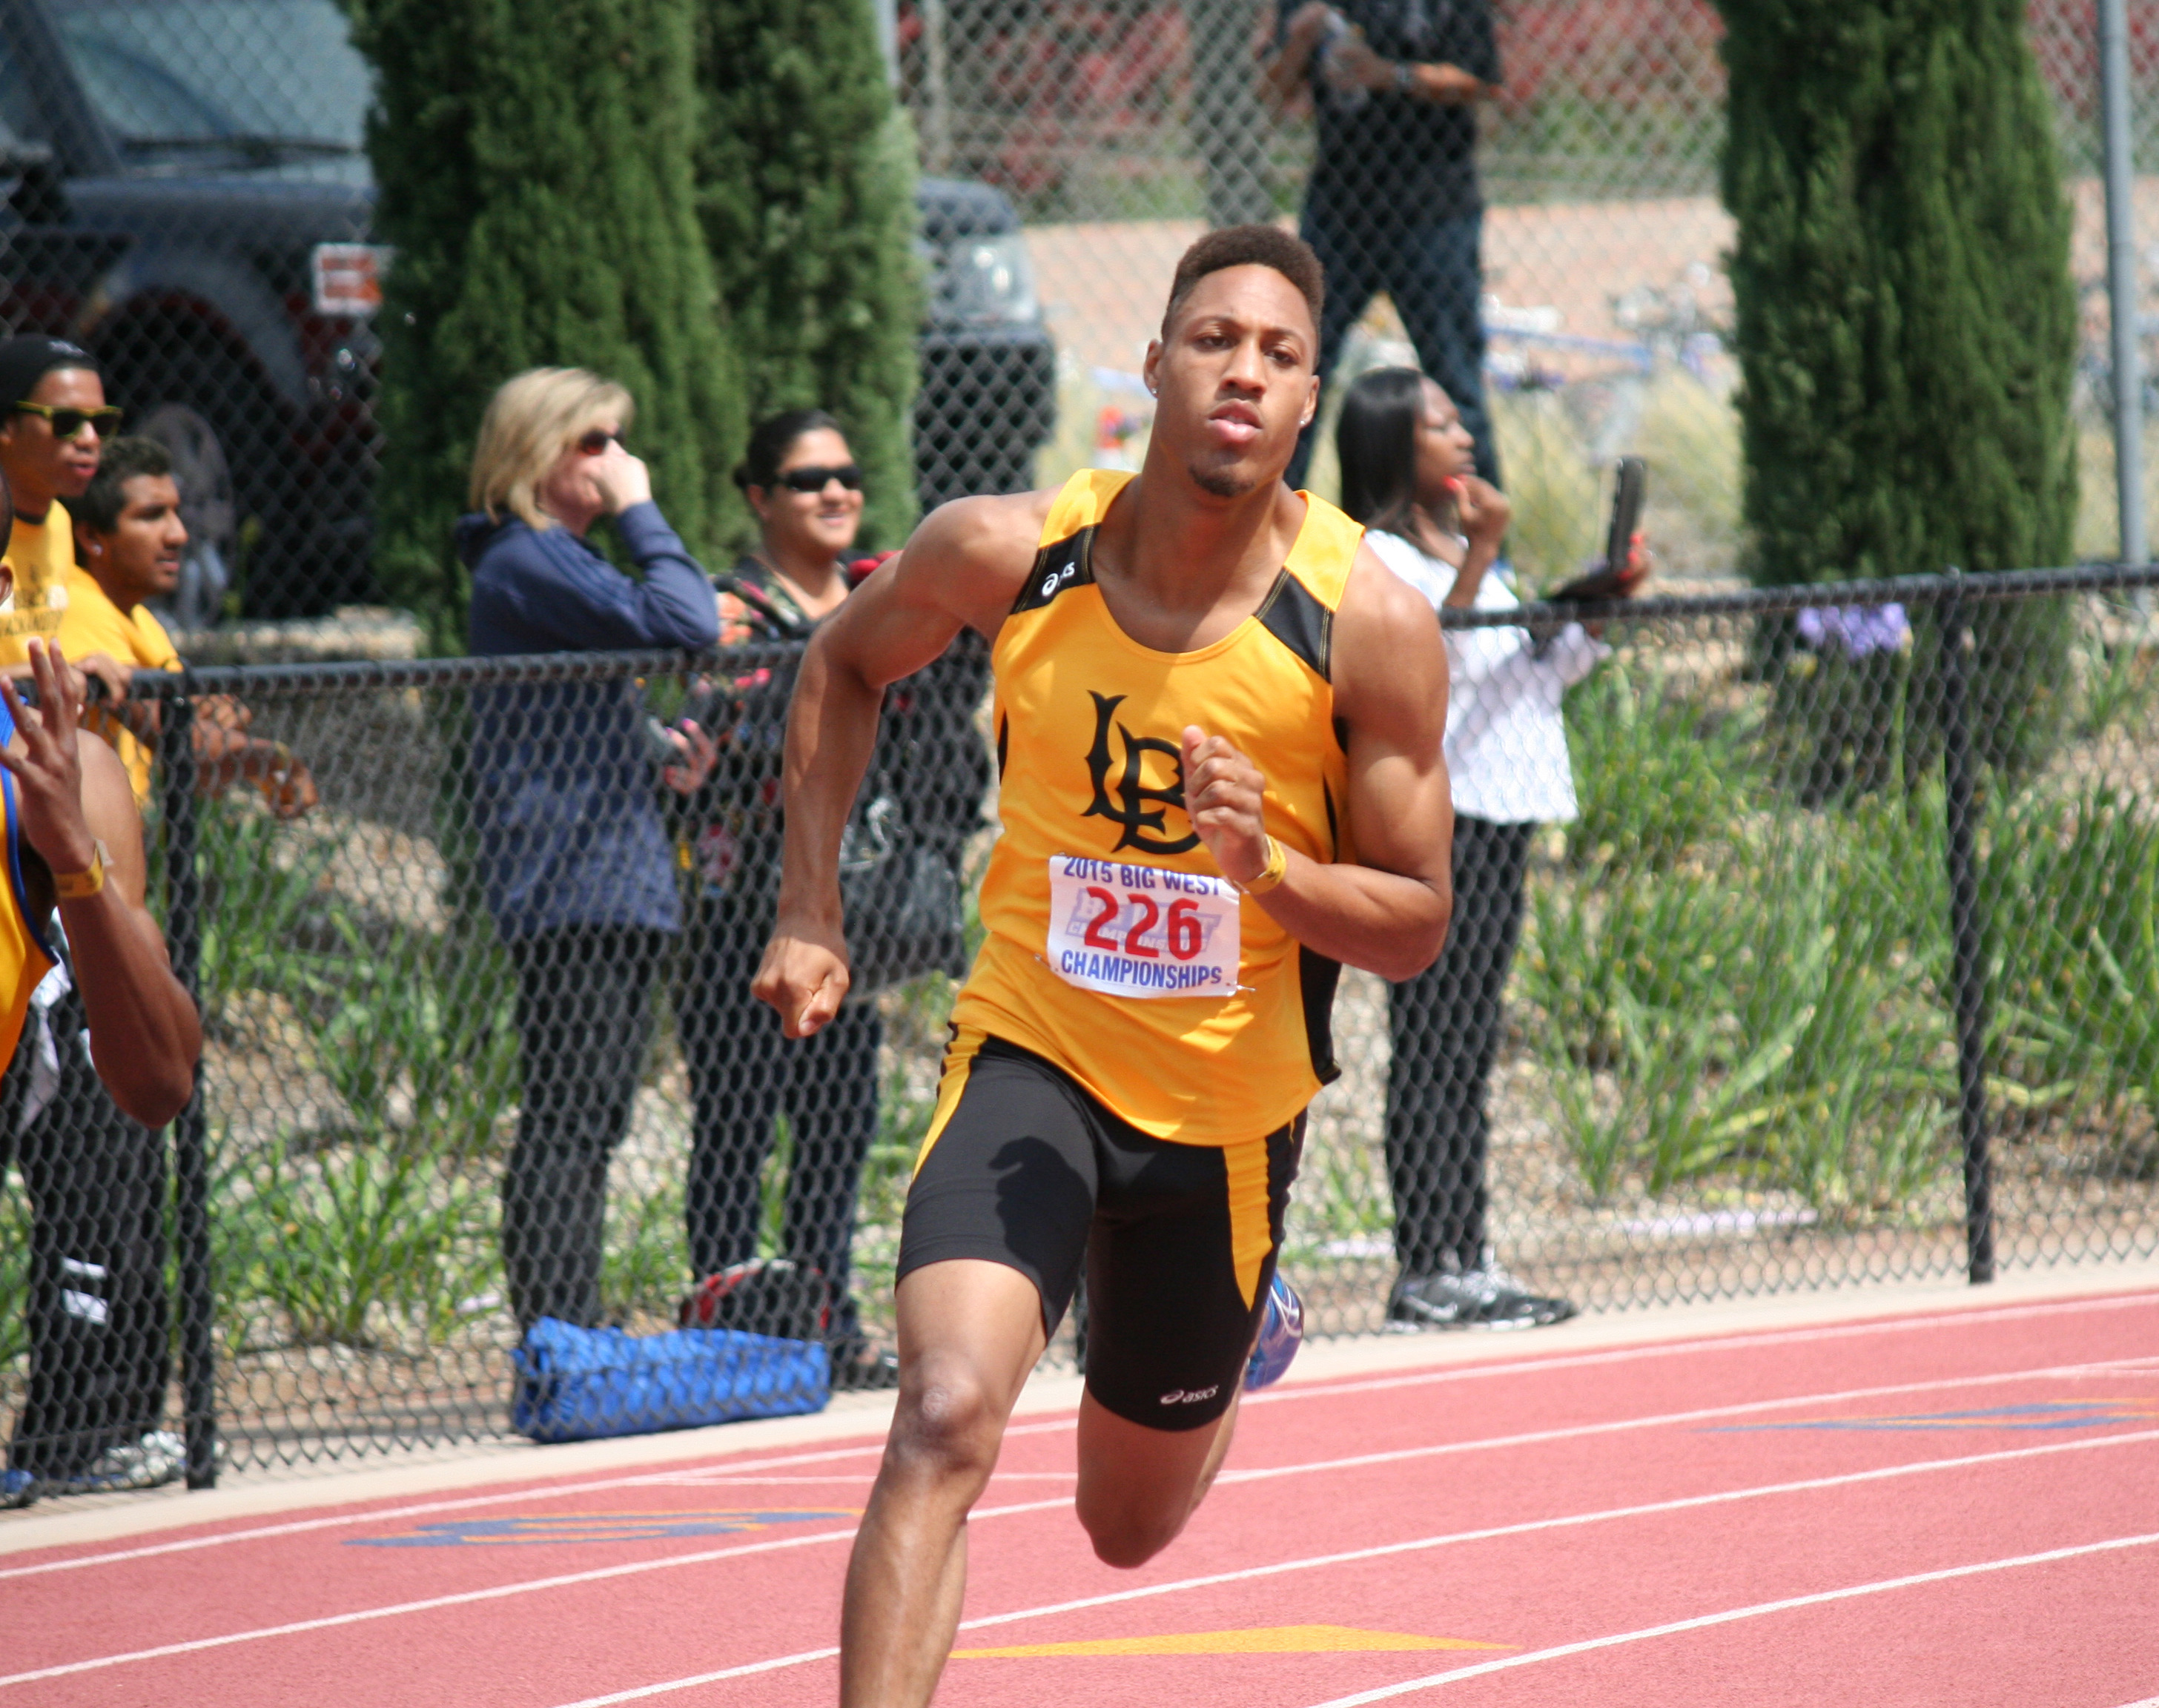 Senior Cameron Glasgow earned All-Big West honors in the 200m, 400m, 4x100 and 4x400.